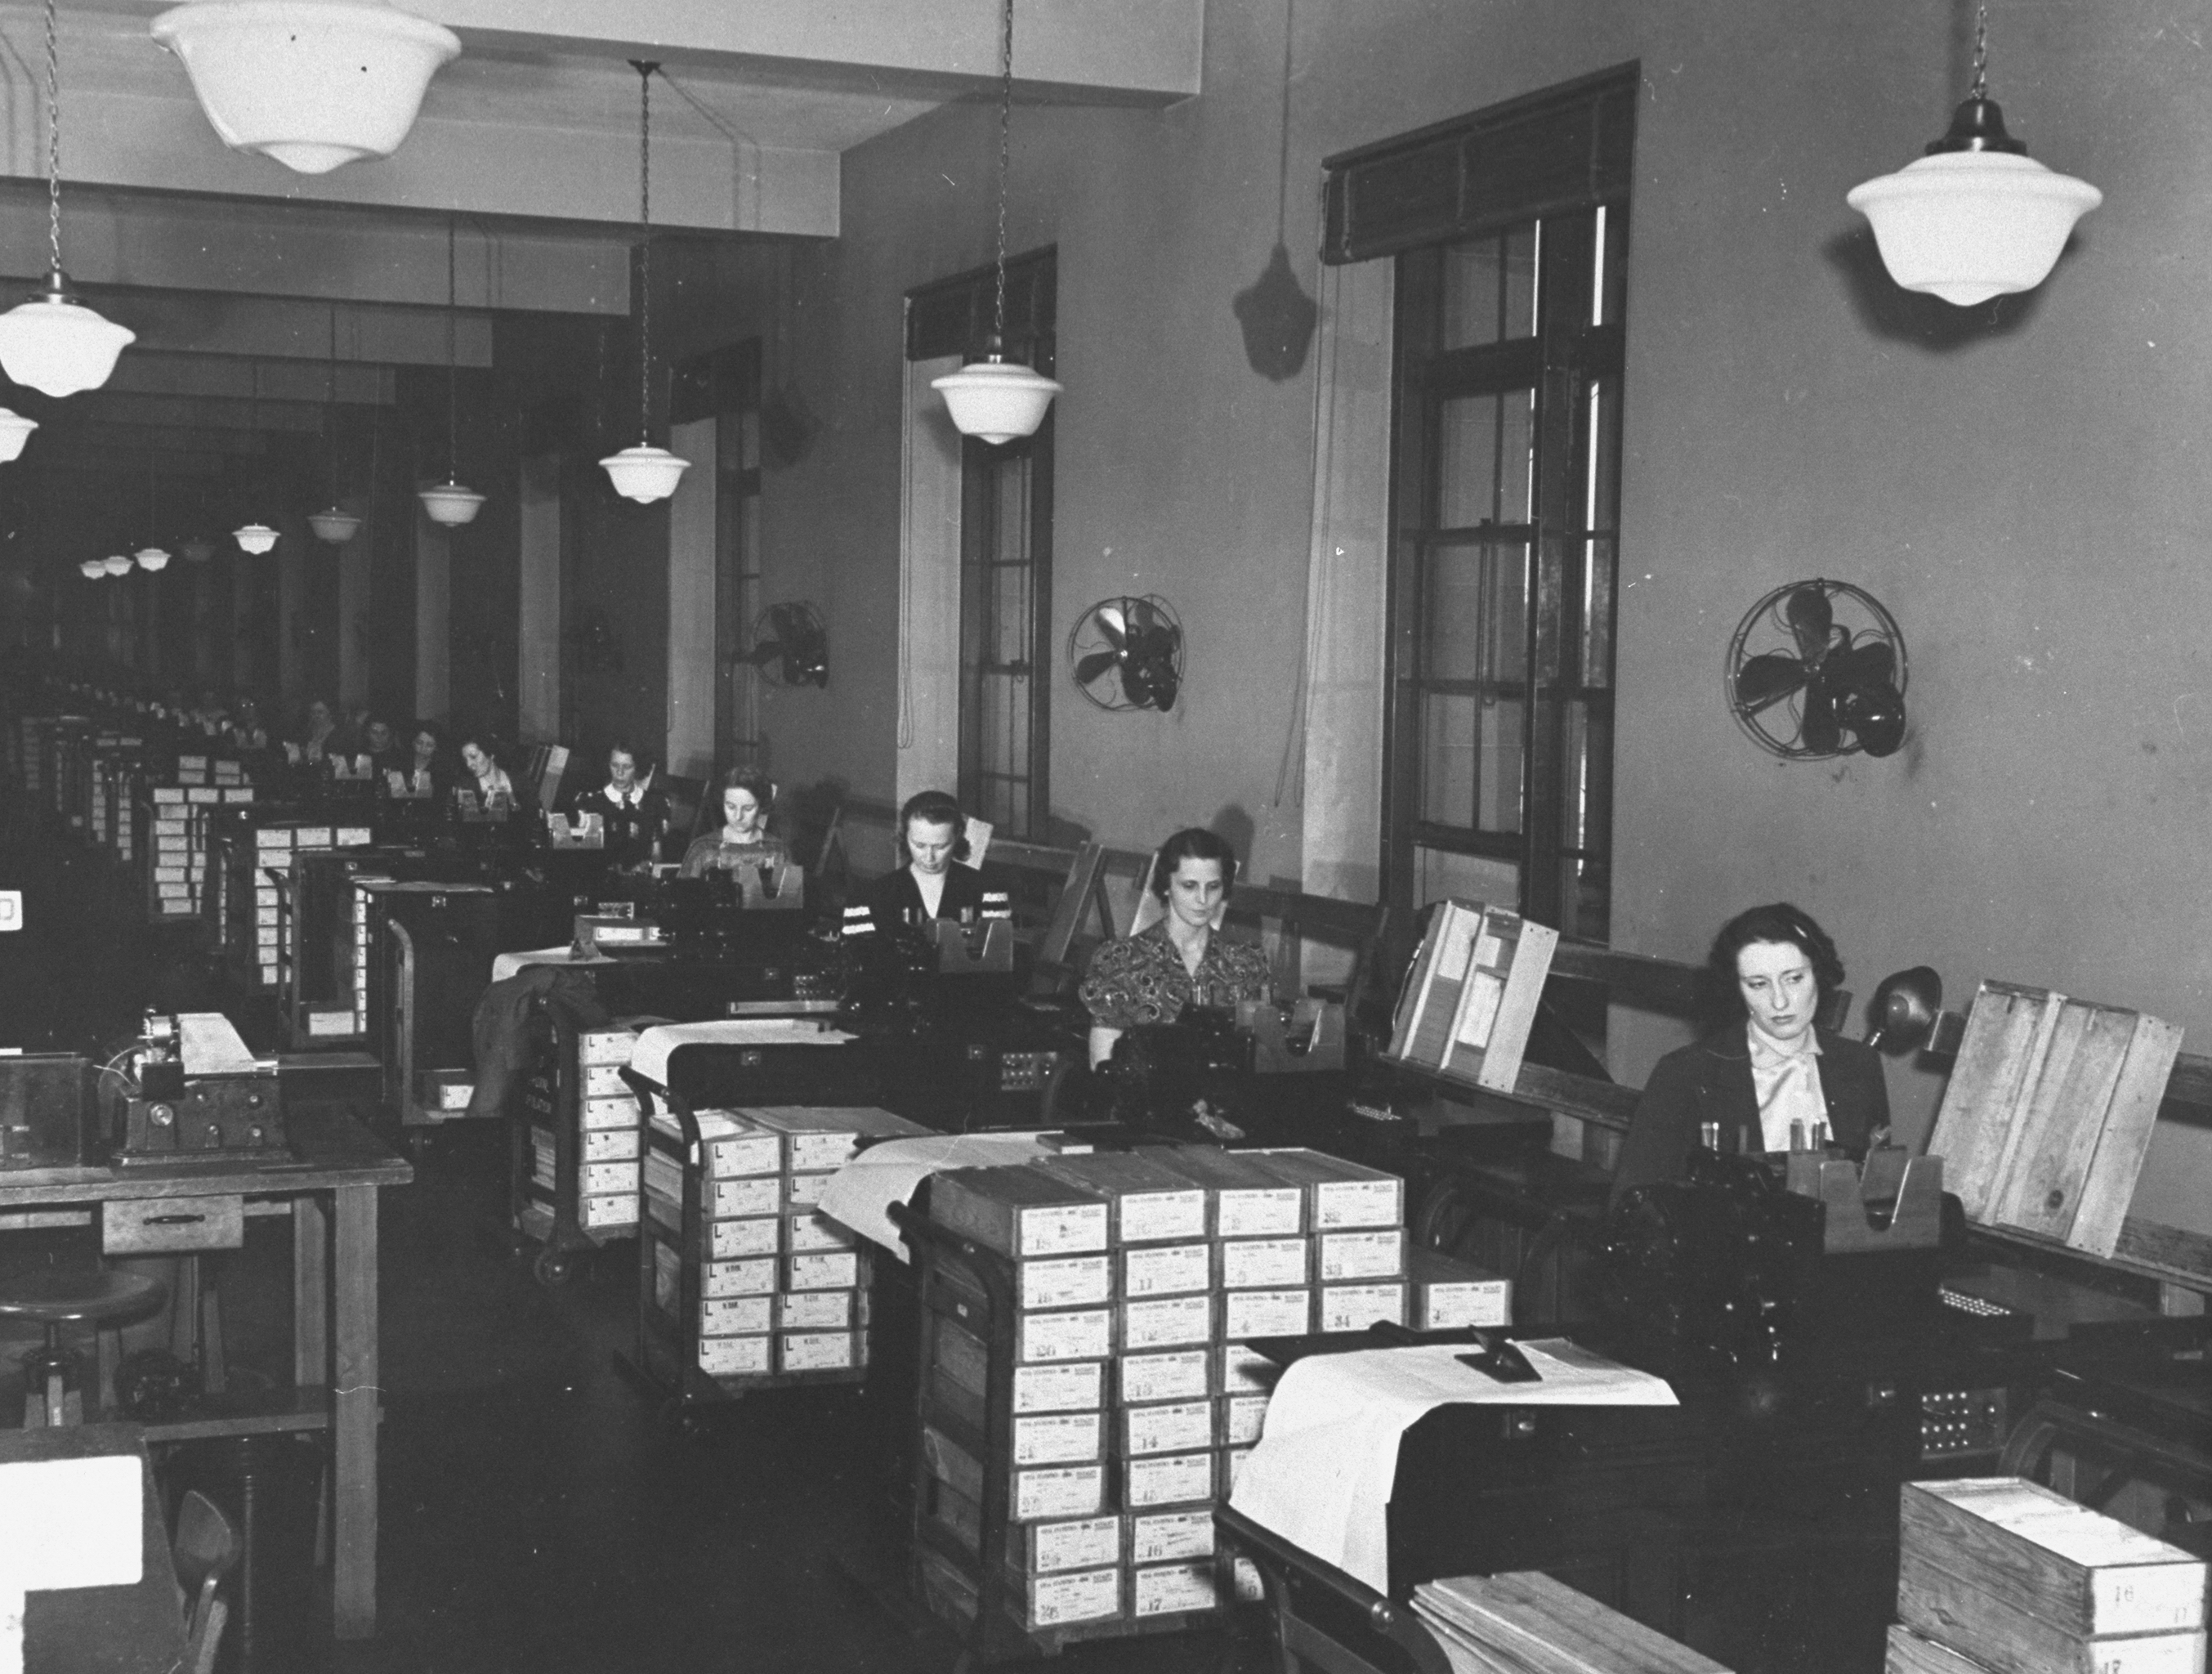 A view of tabulators working at their desks in the Census Bureau.